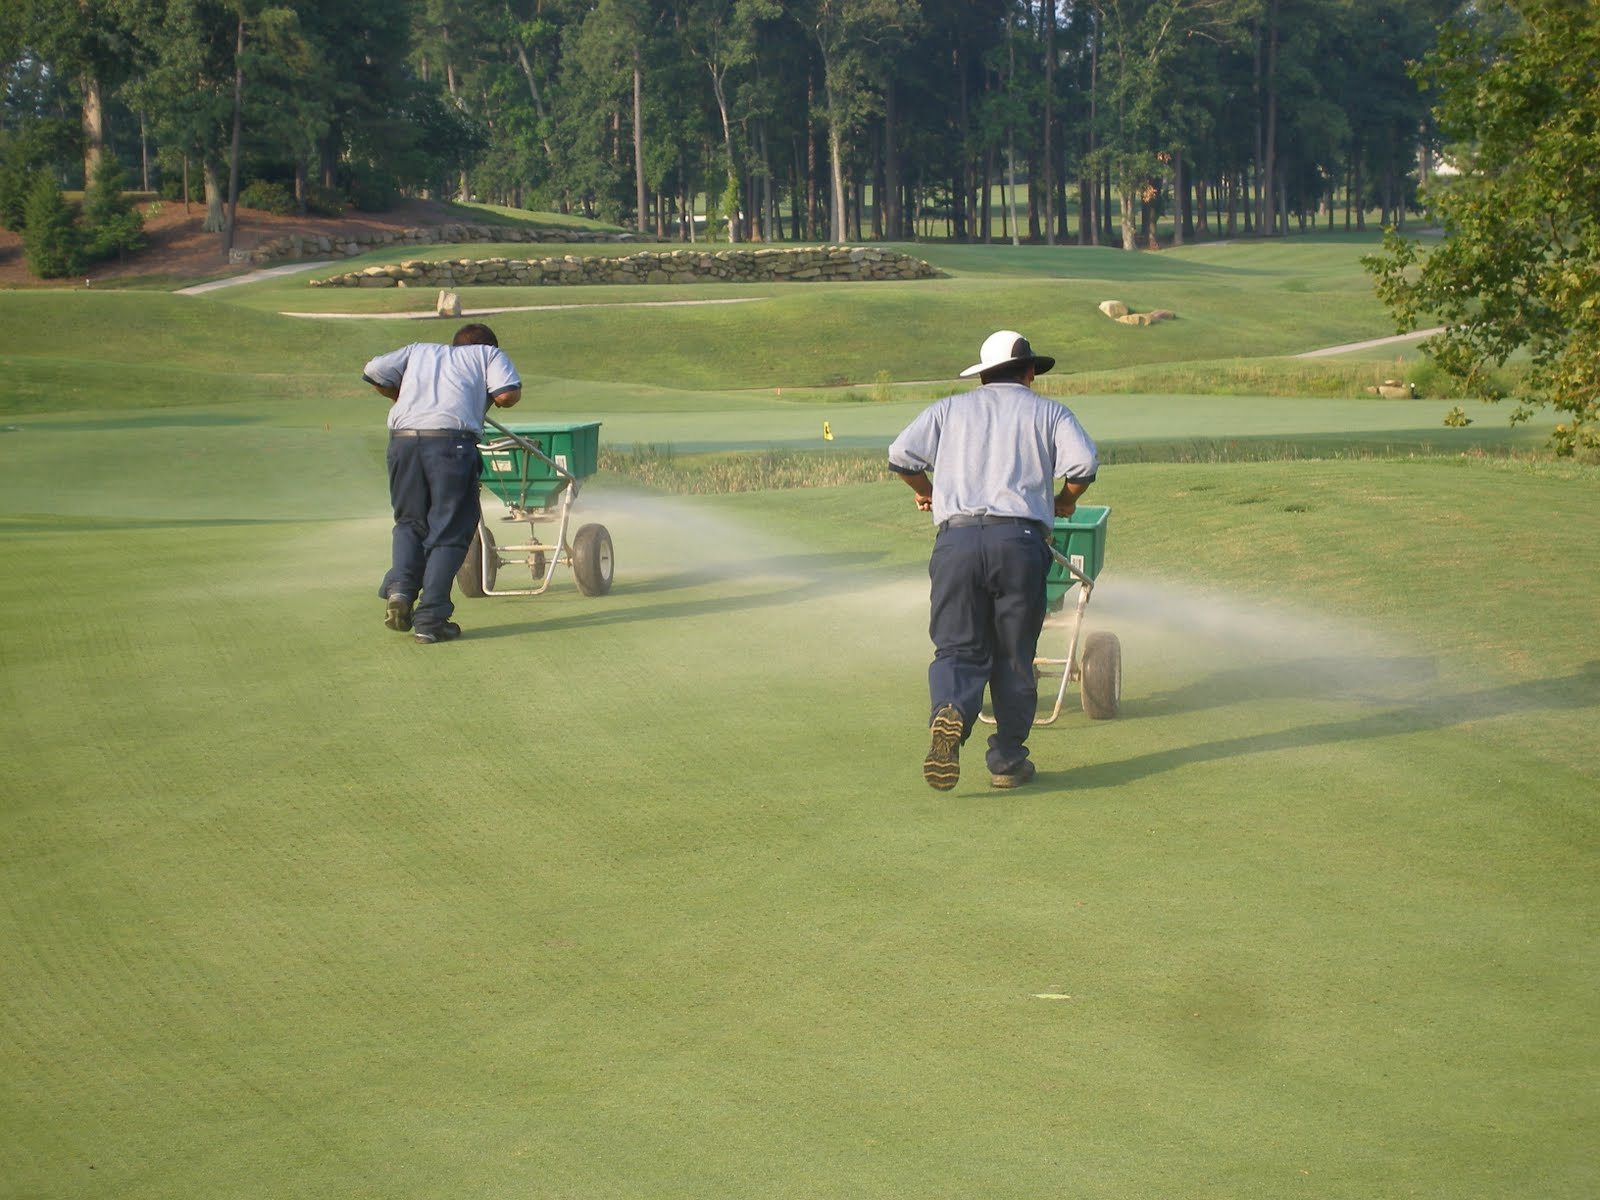 Golf Course Maintenance - Topdressing Greens